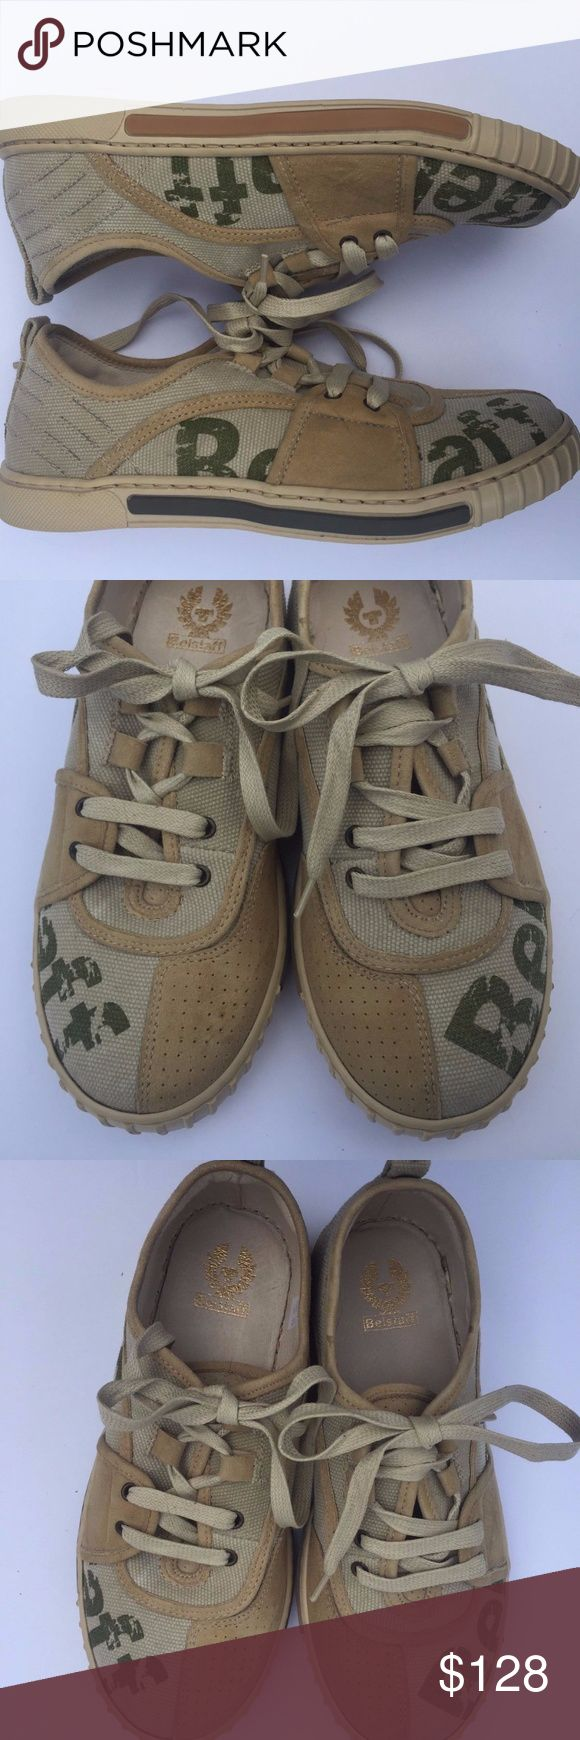 BELSTAFF Sneakers Olive Green & Brown Lace Up Shoe BELSTAFF Sneakers Olive Green & Brown Lace Up Shoes Large Logo  Excellent Preowned Condition Size 35 / 5. No flaws. Priced to sell. Belstaff Shoes Sneakers